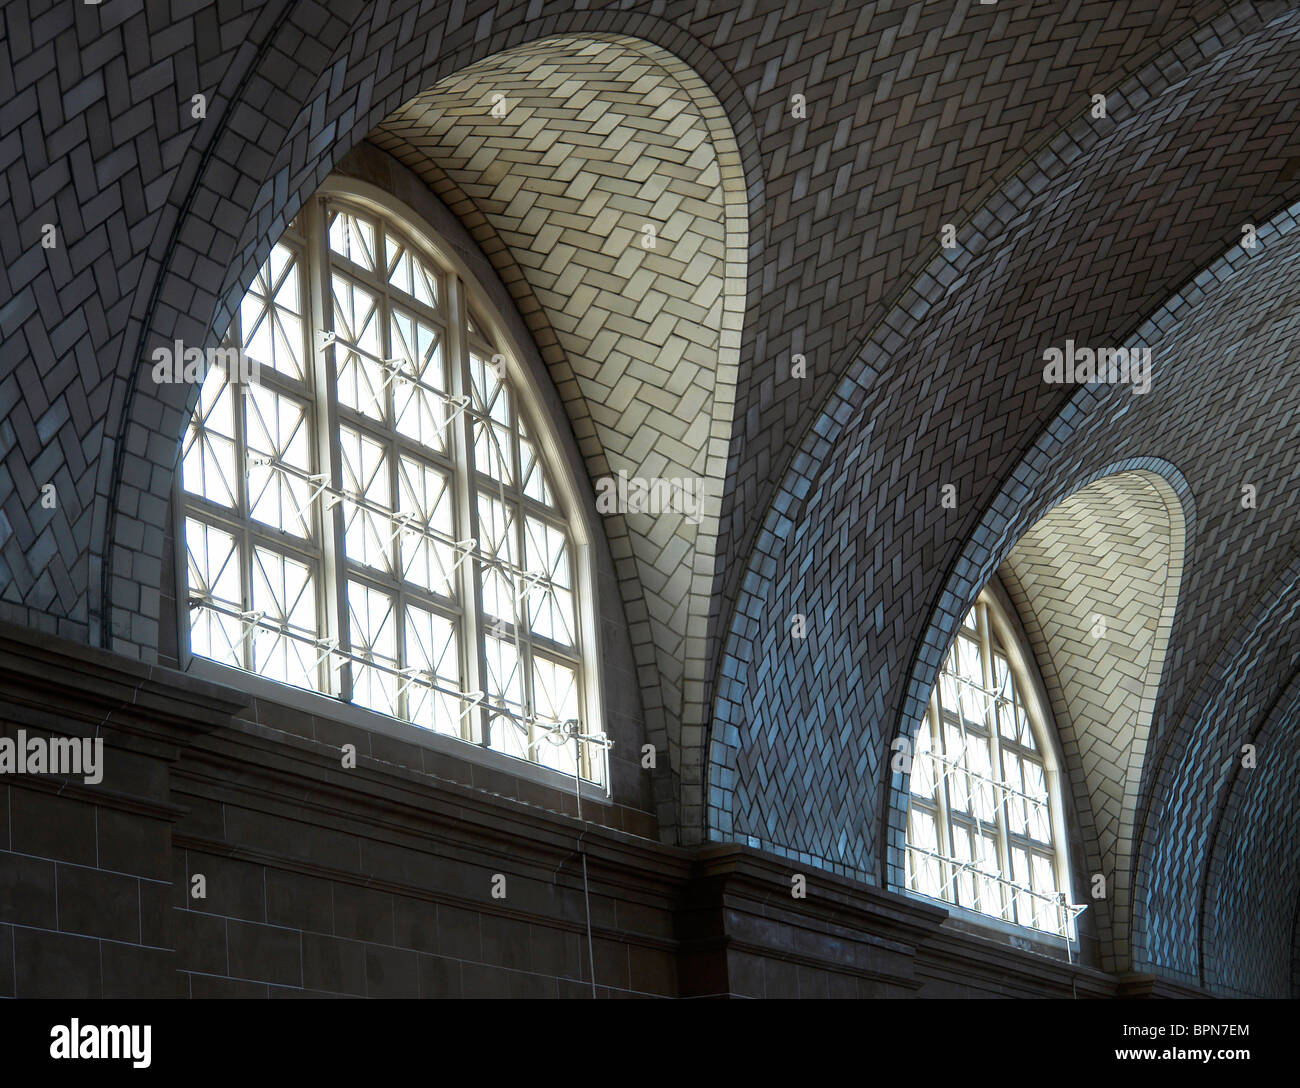 Arched windows - Stock Image